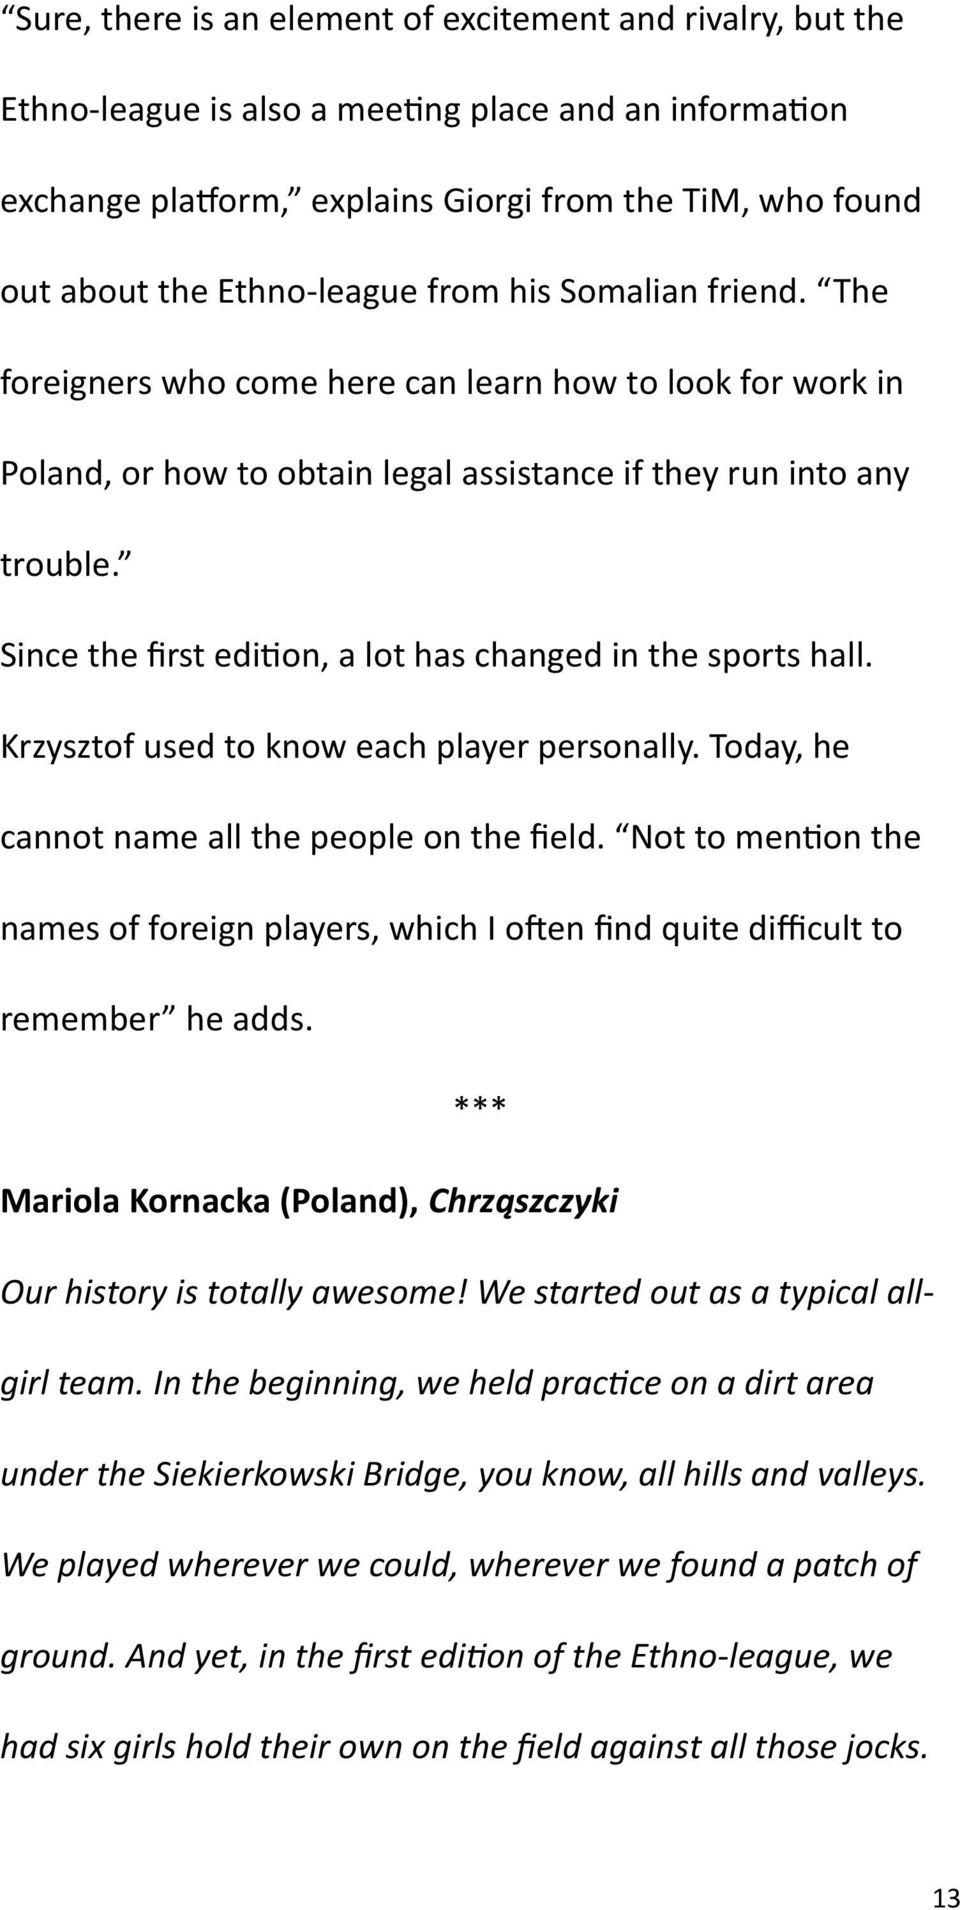 Since the first edition, a lot has changed in the sports hall. Krzysztof used to know each player personally. Today, he cannot name all the people on the field.